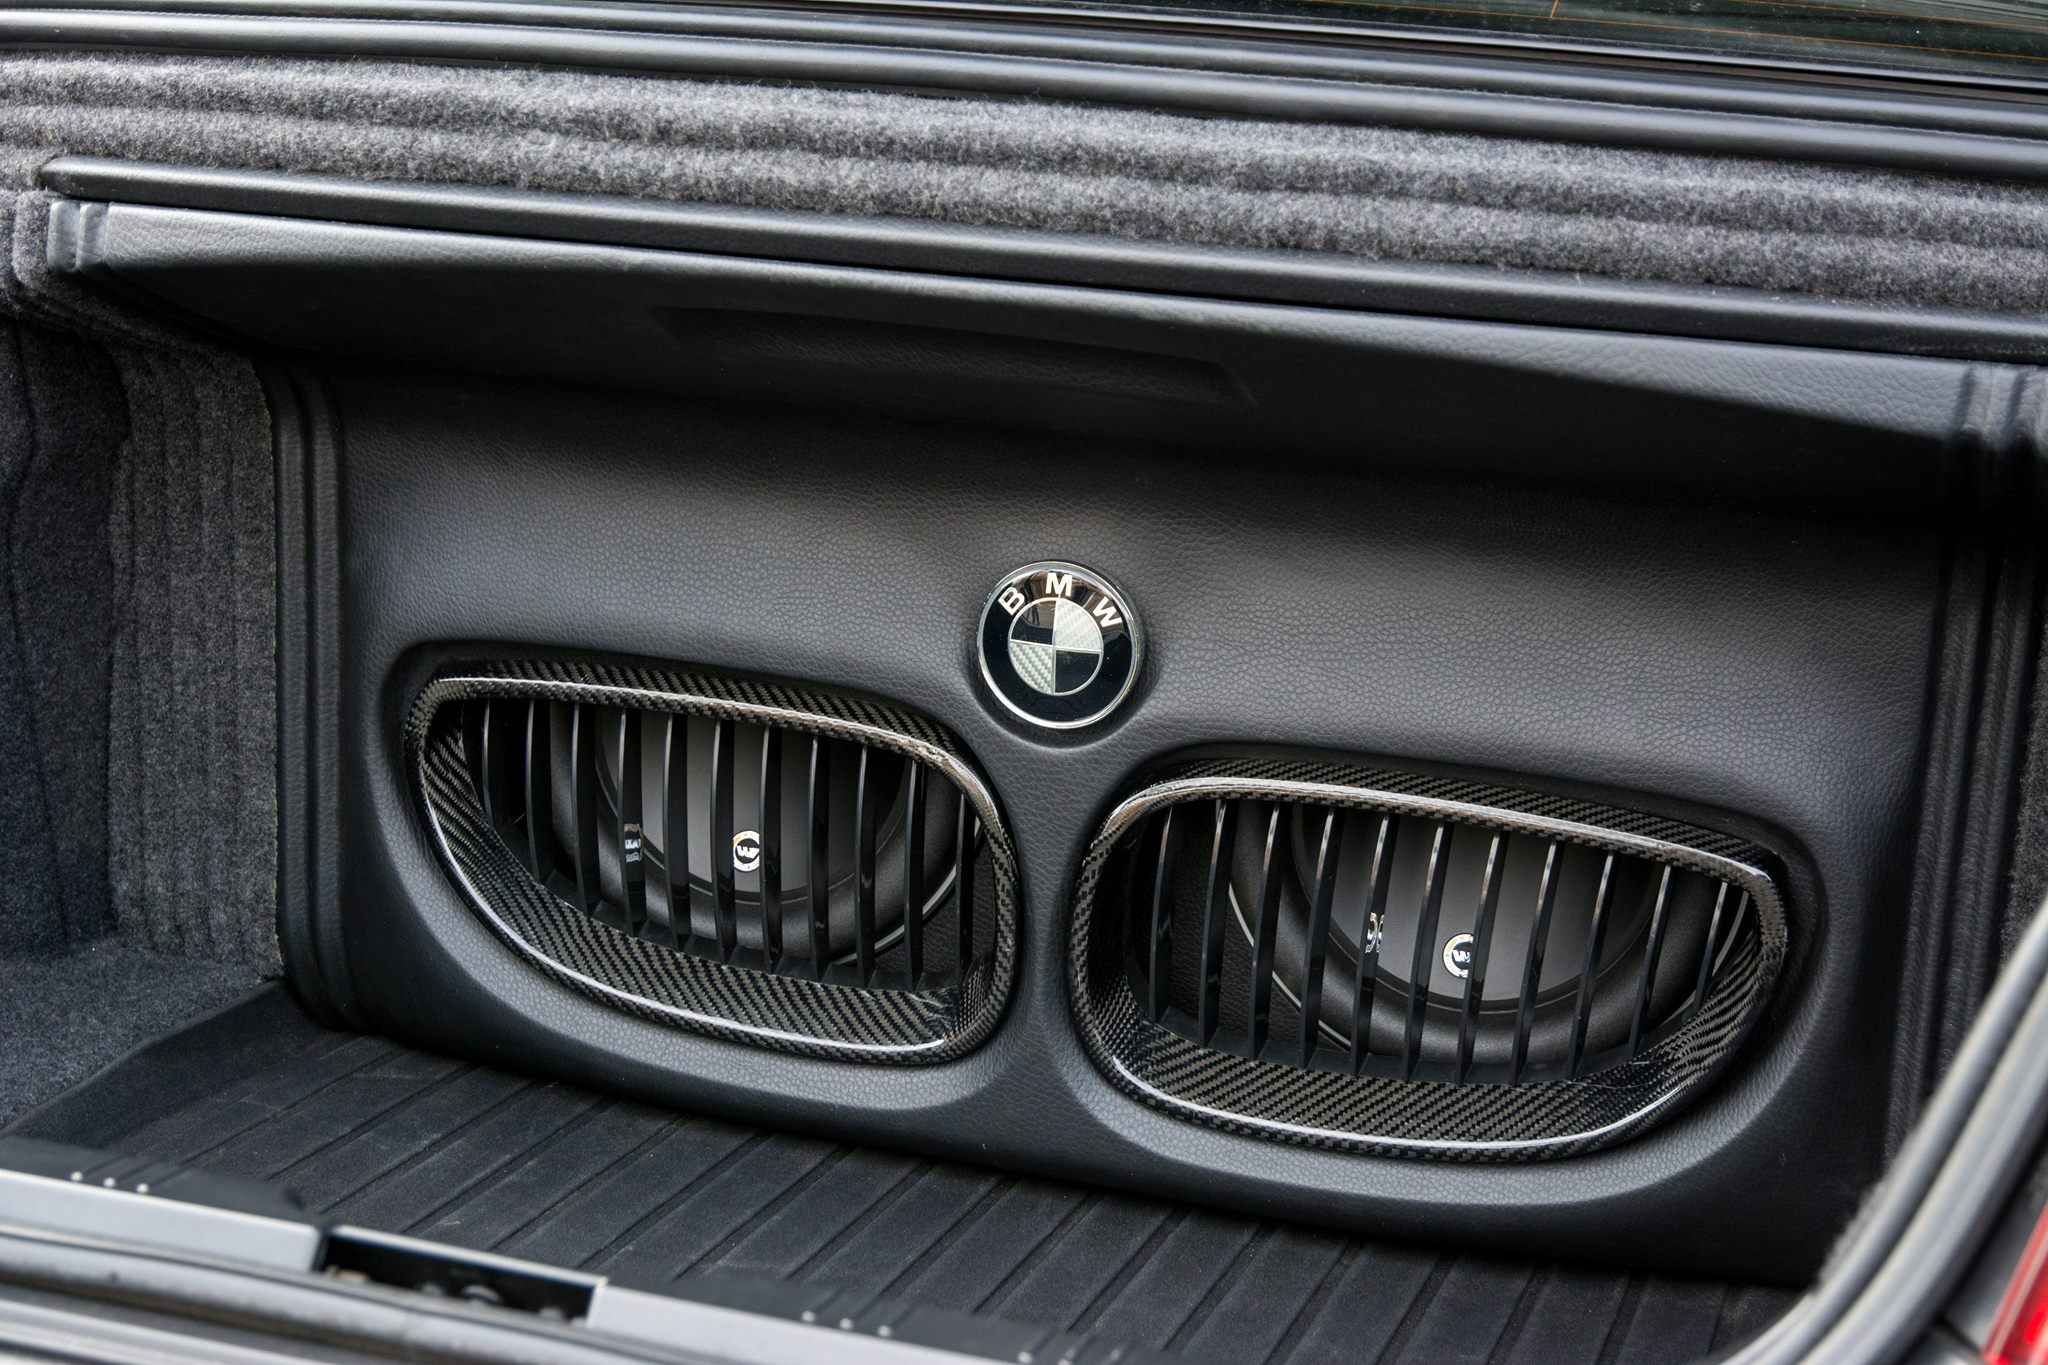 E60 Bmw 5 Series With Four Kidneys Bmw Car Tuning